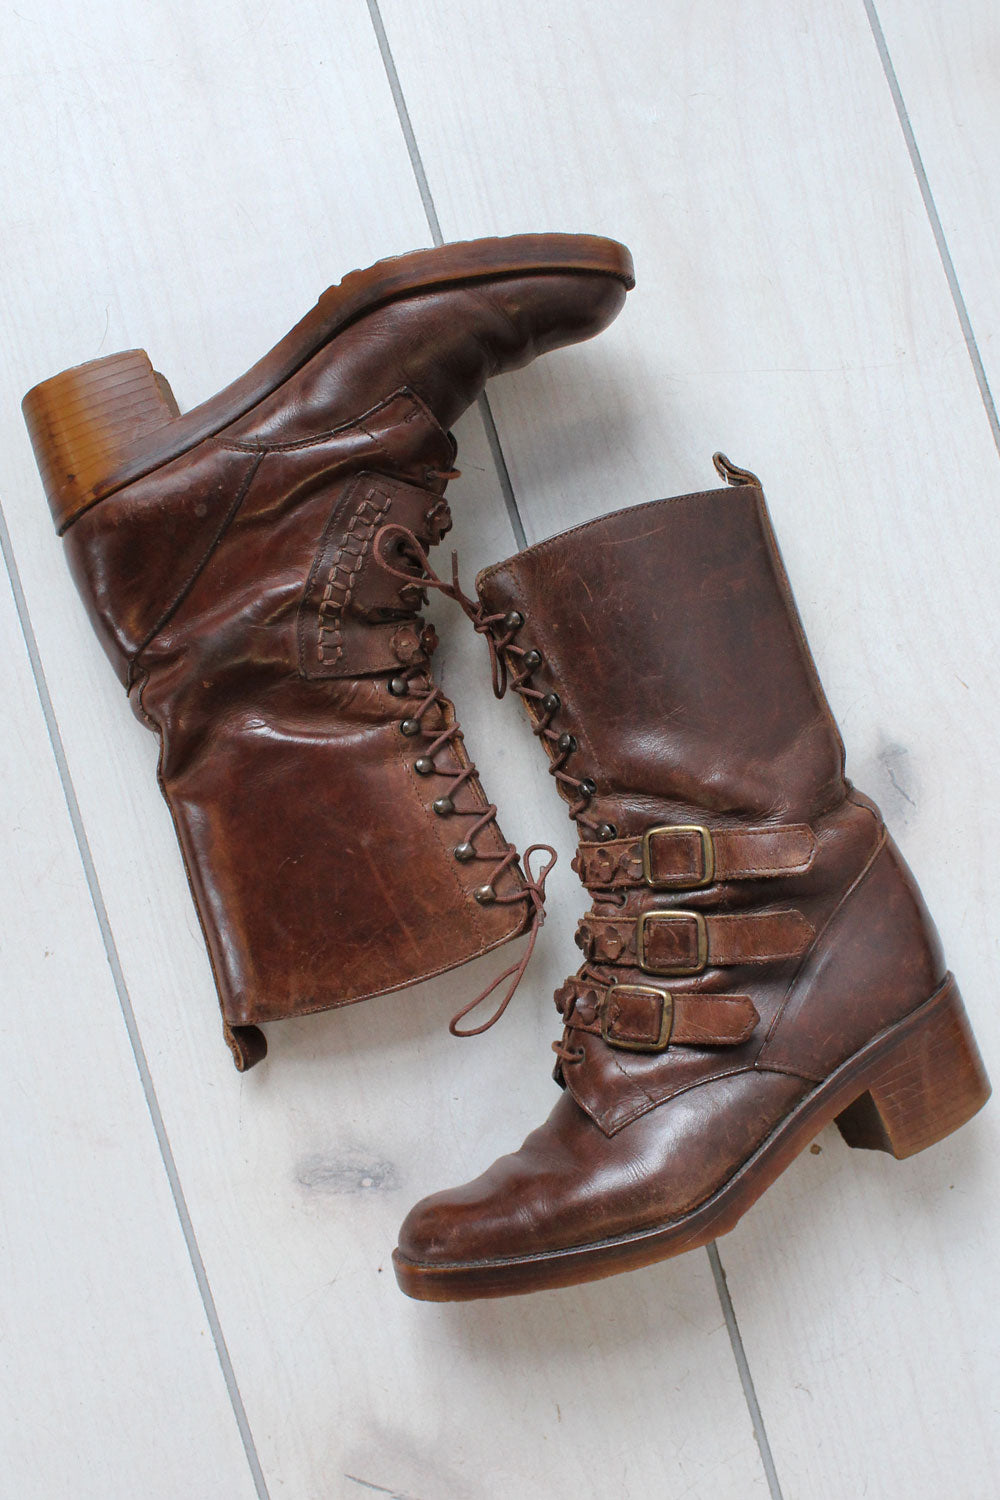 Buckled Lace-up Heeled Boots 6